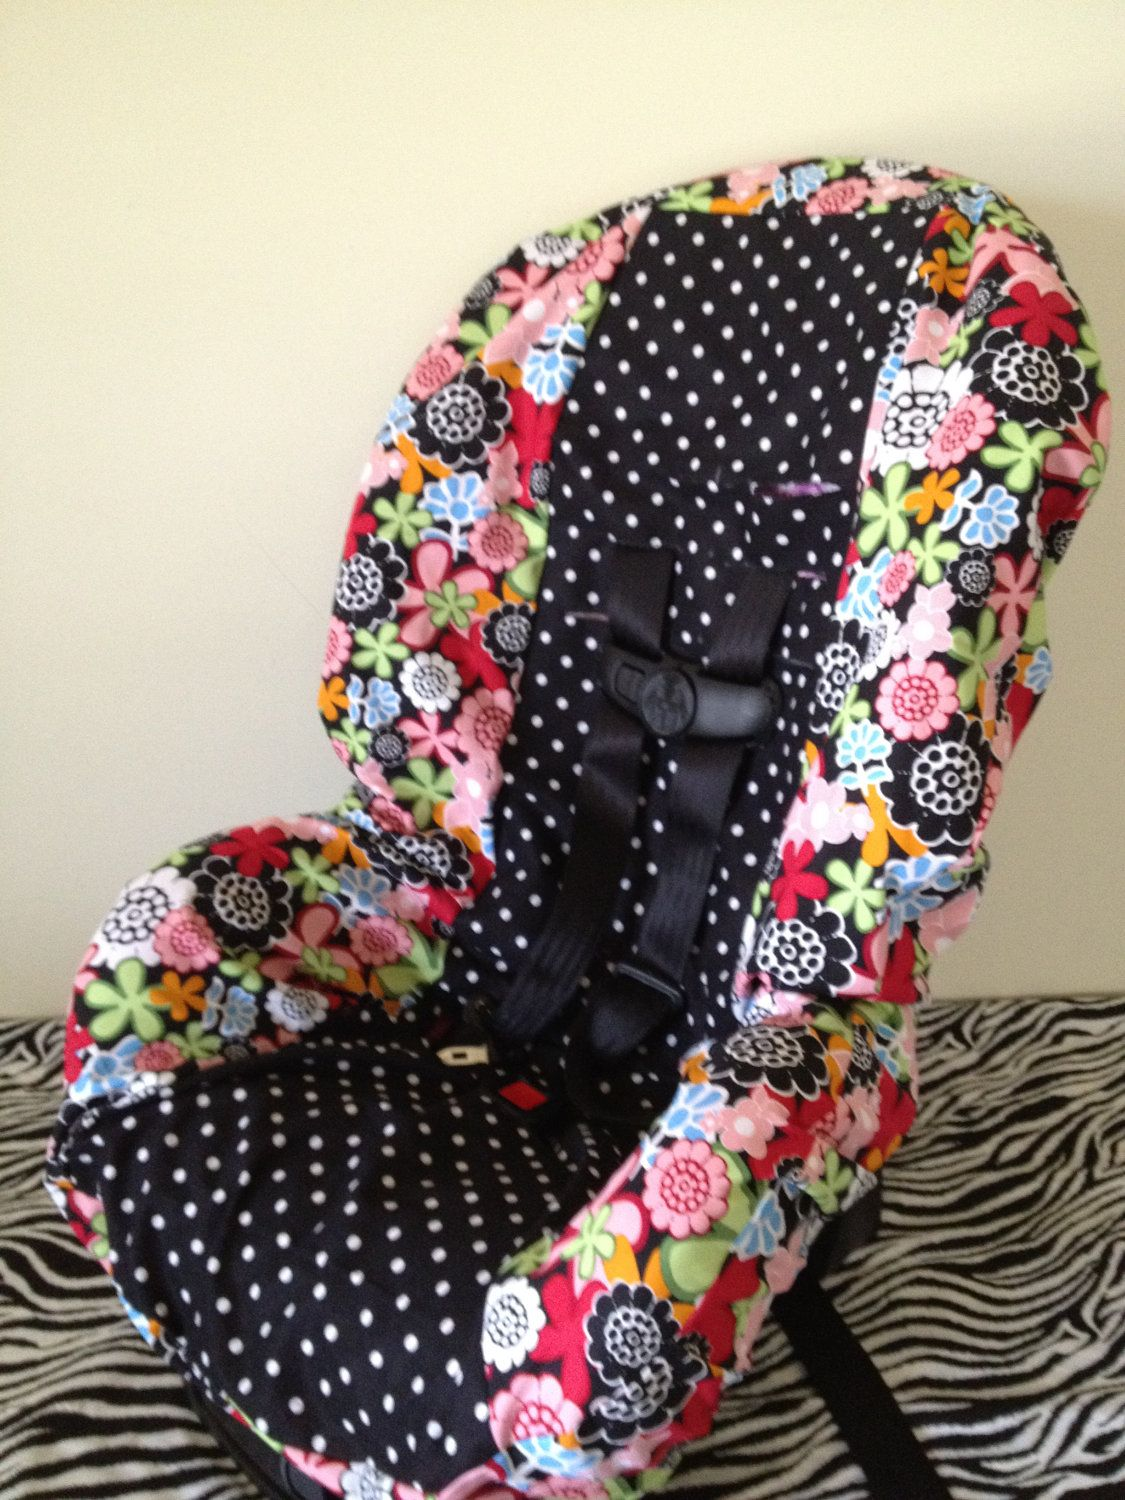 Thinking About Covering The Chair Toddler Car Seat